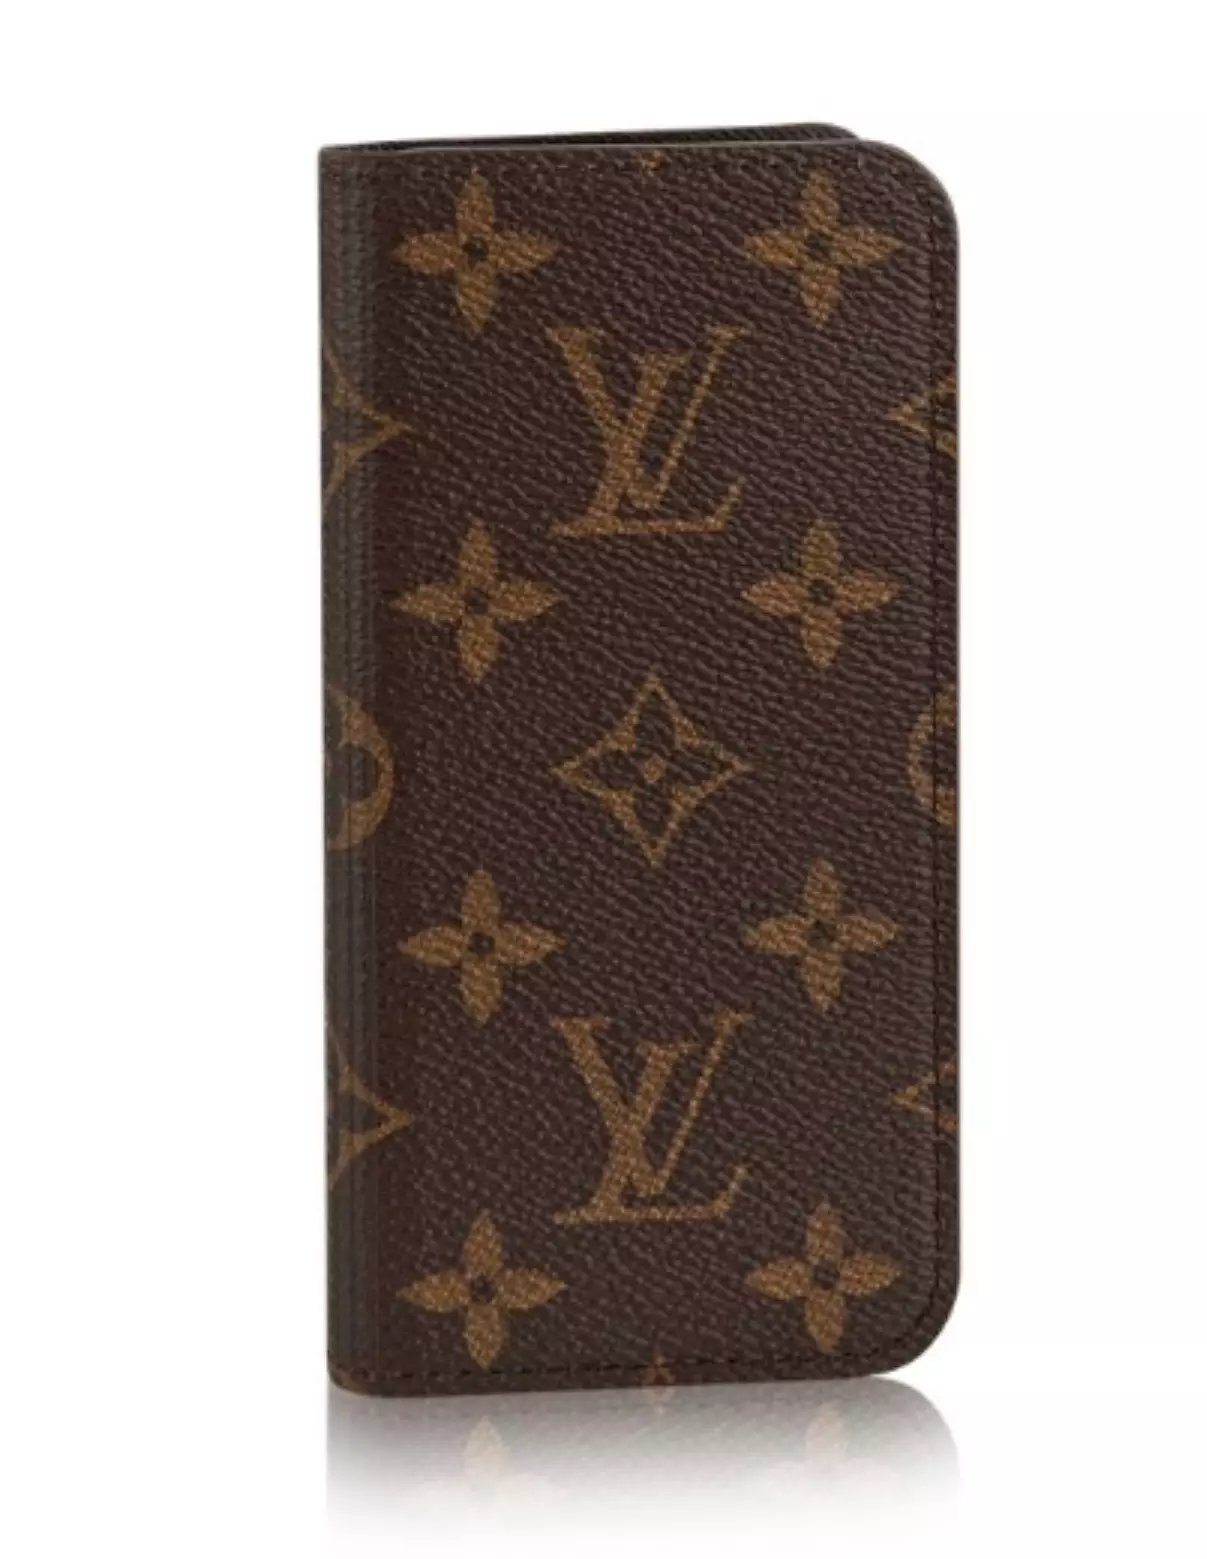 cover for iphone 6 Plus top ten iphone 6 Plus cases fashion iphone6 plus case i 6 phone case iphone cover brands cas iphone designer iphone 6 wallet custom iphone 6 cases cheap tory burch iphone case 6